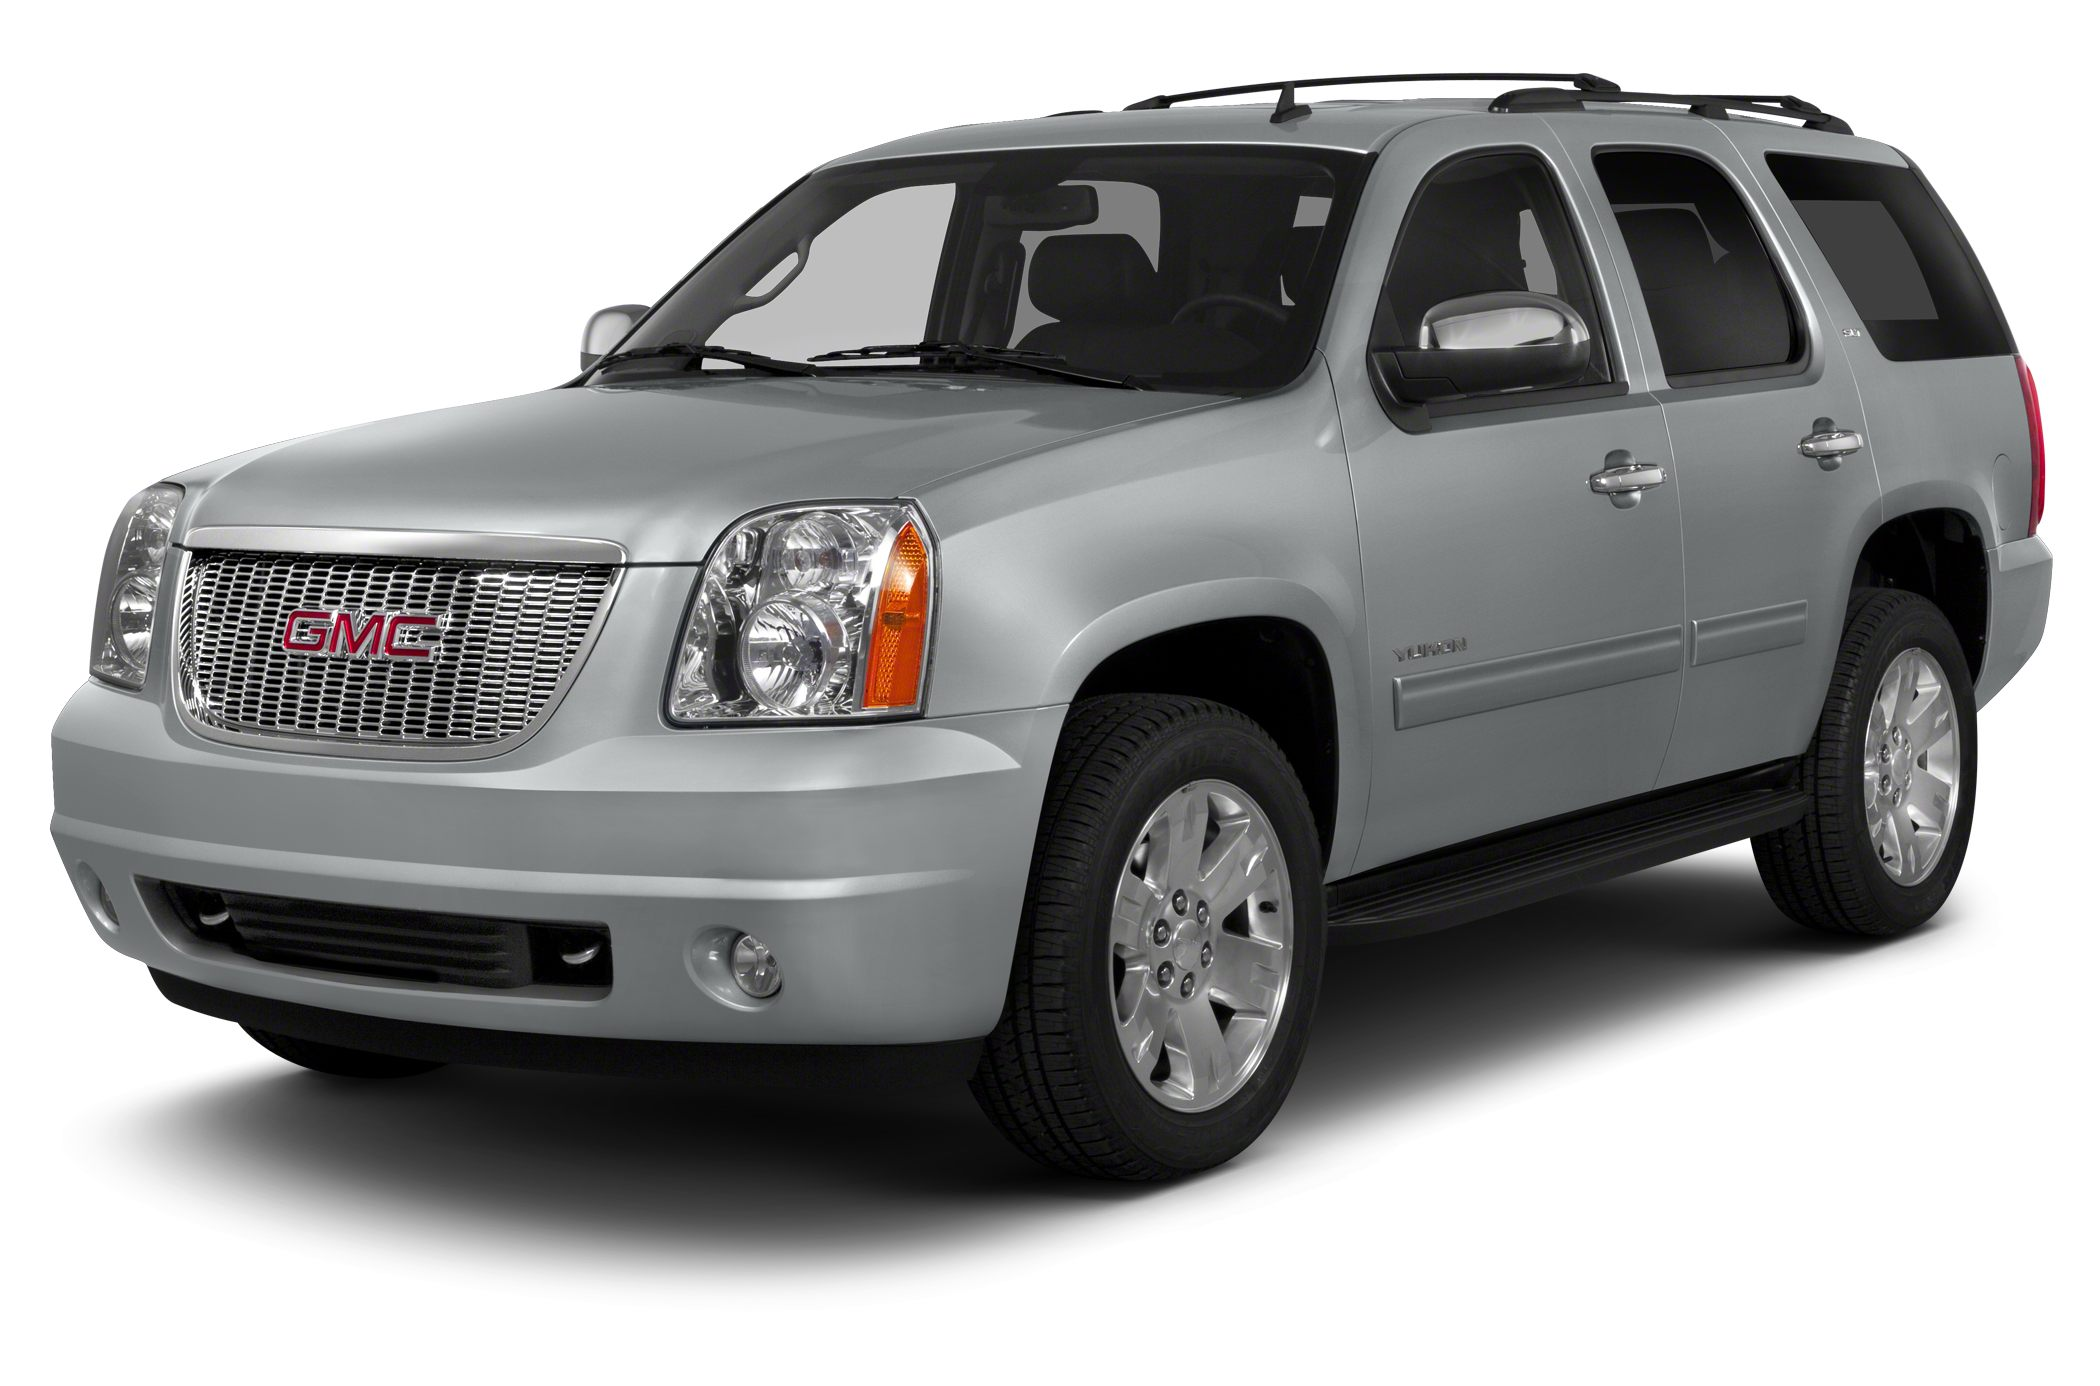 2013 GMC Yukon SLT SUV for sale in Maysville for $0 with 64,789 miles